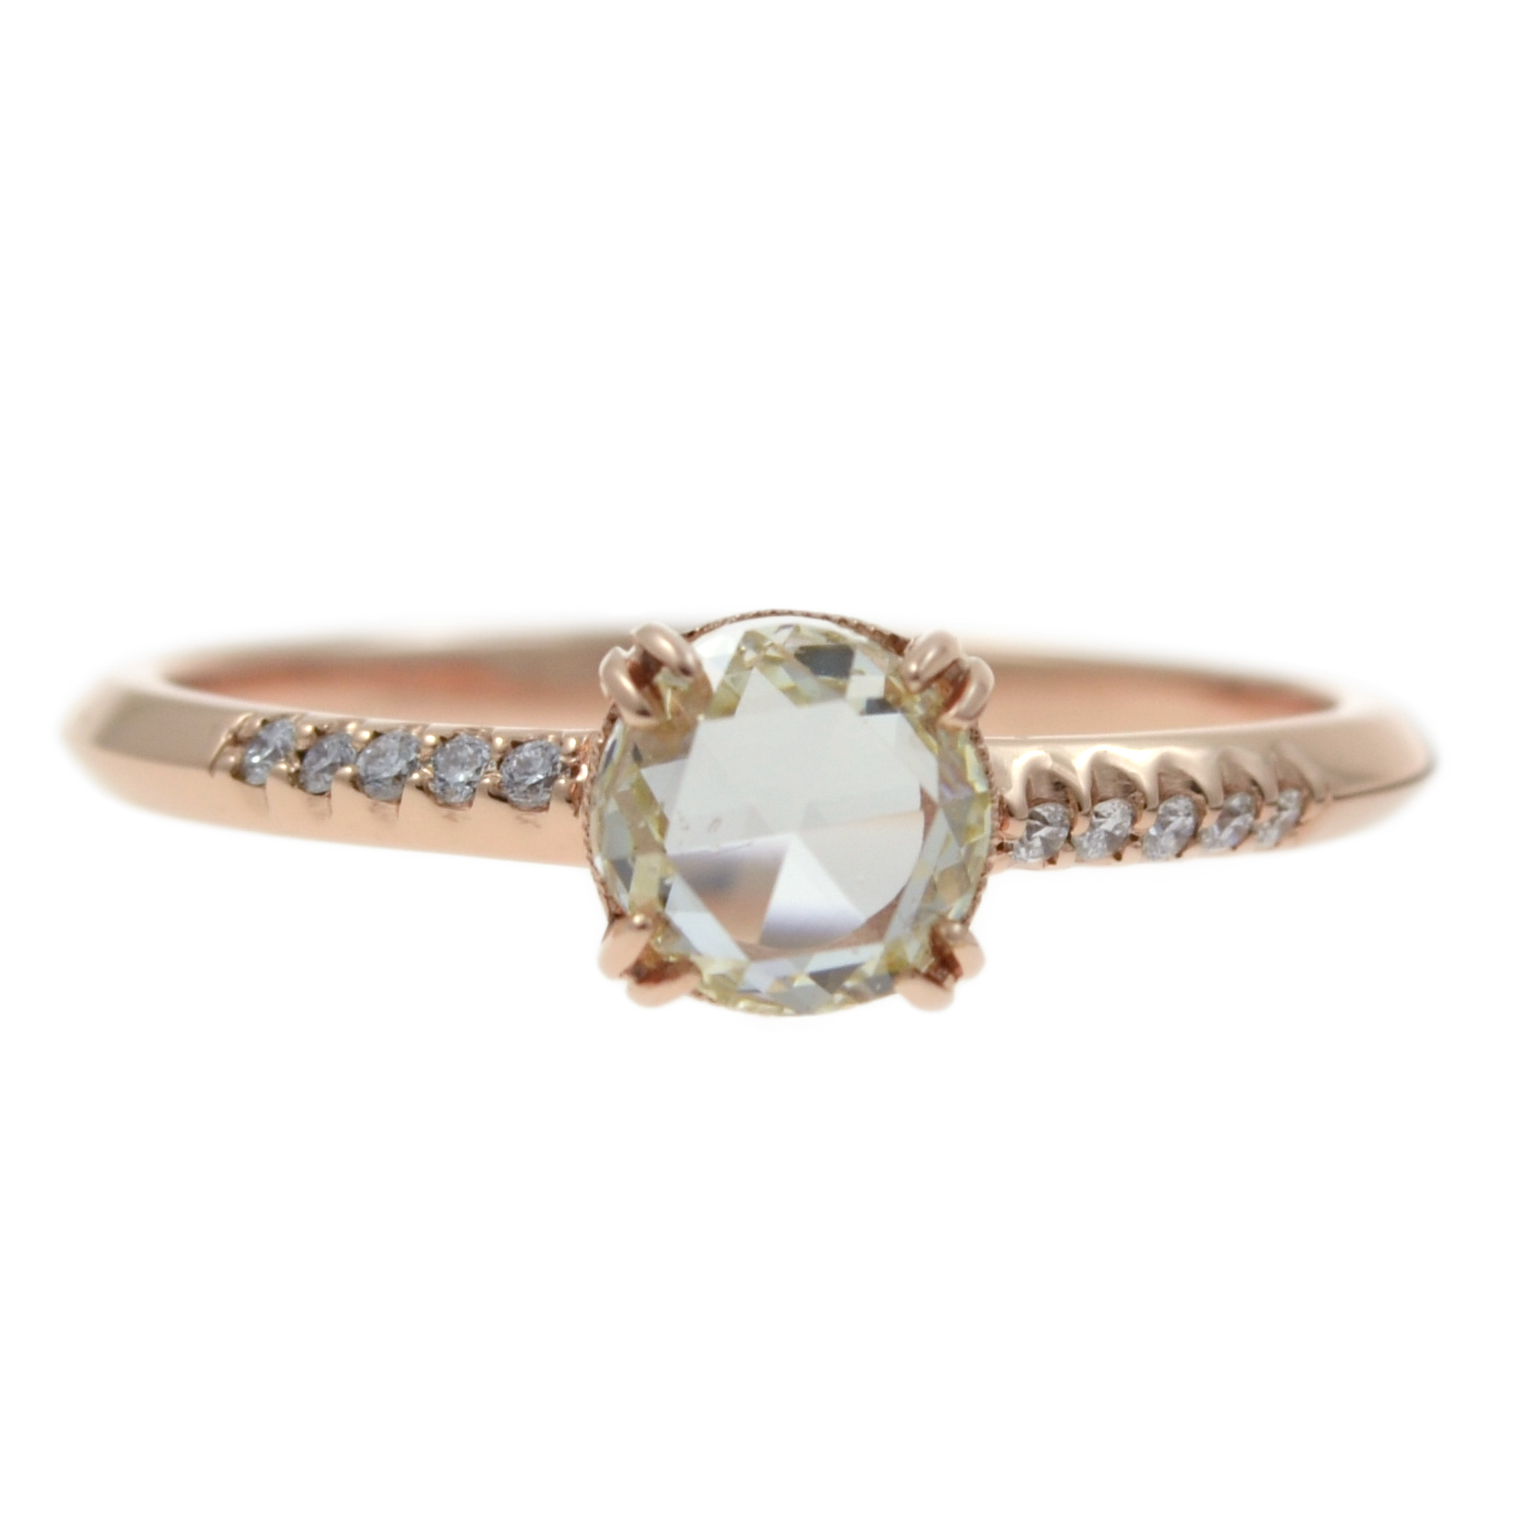 designed boston sunstone oregon rings gallery cut cushion gold ring christine rose diamond jewelry custom engagement